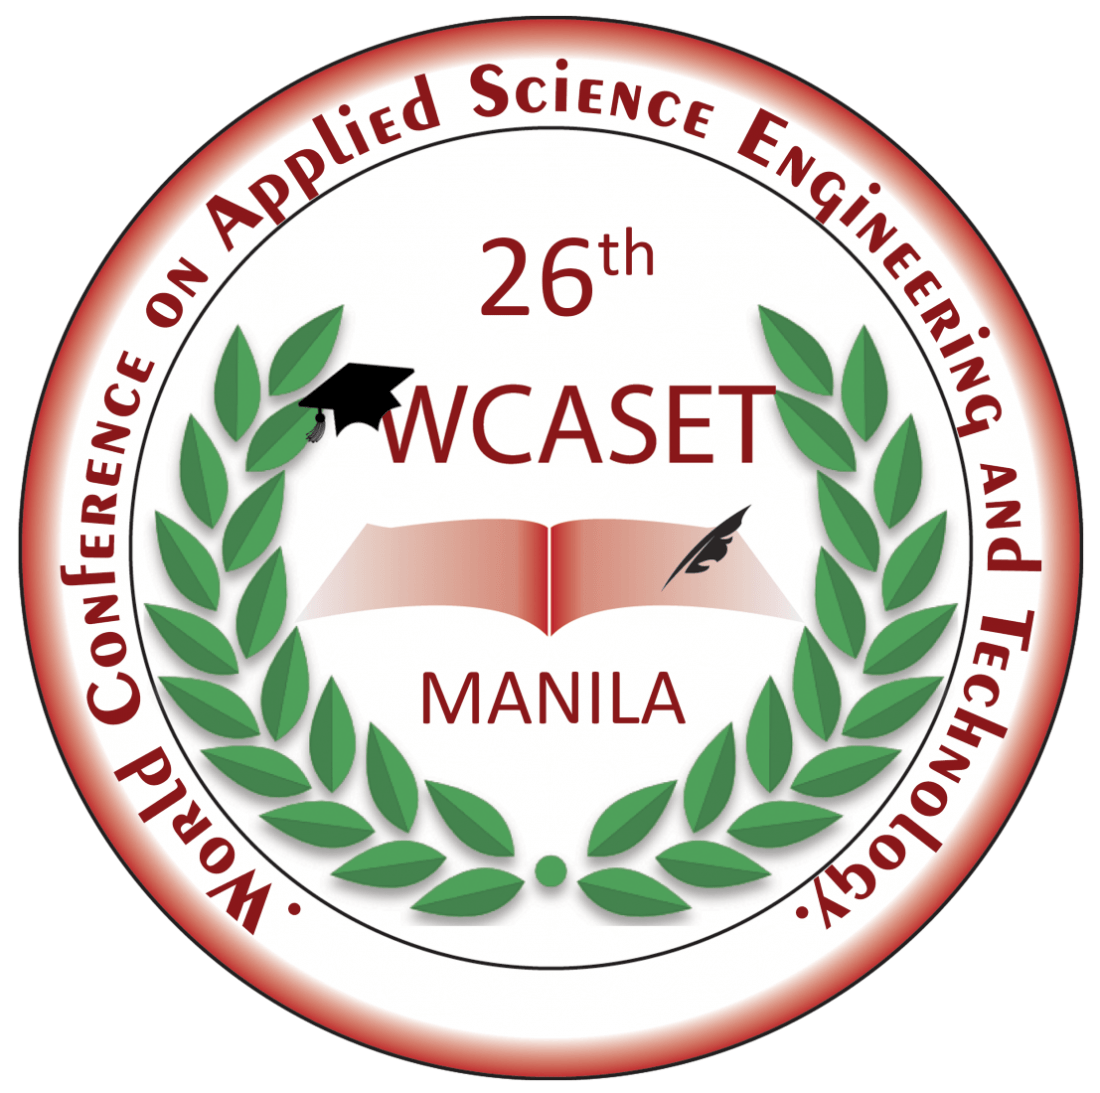 26th World Conference on Applied Science Engineering &Technology